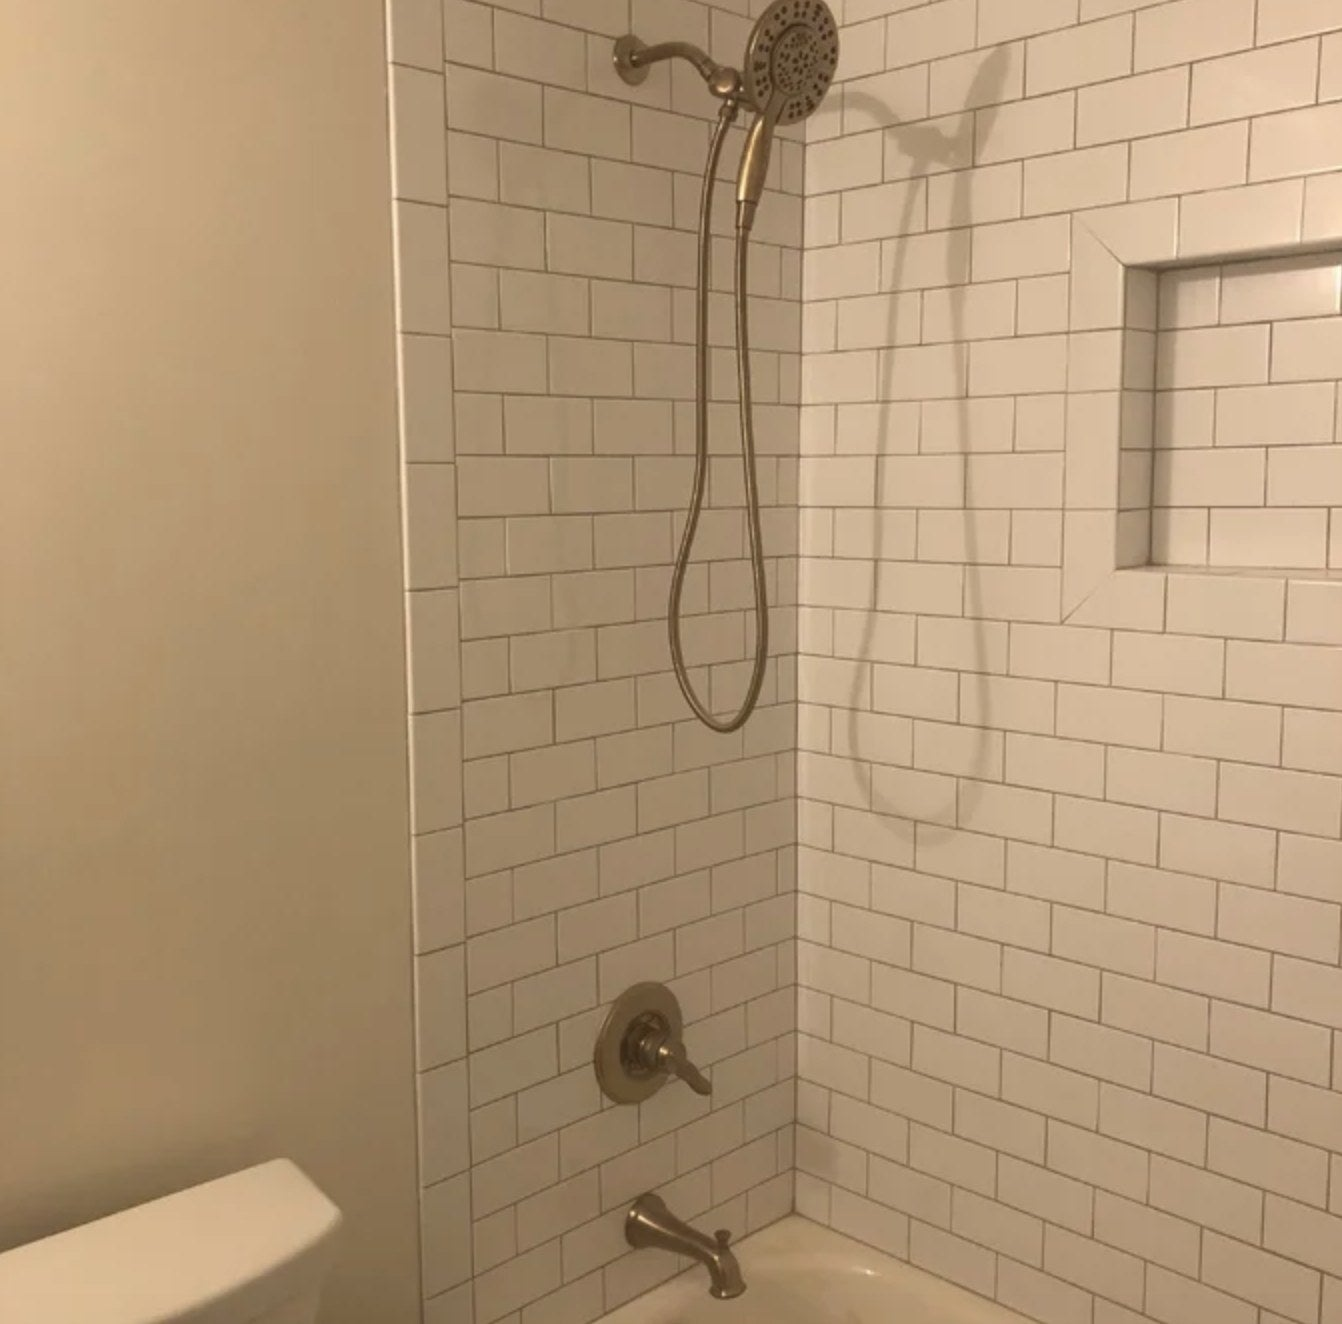 the showerhead in a reviewer's shower